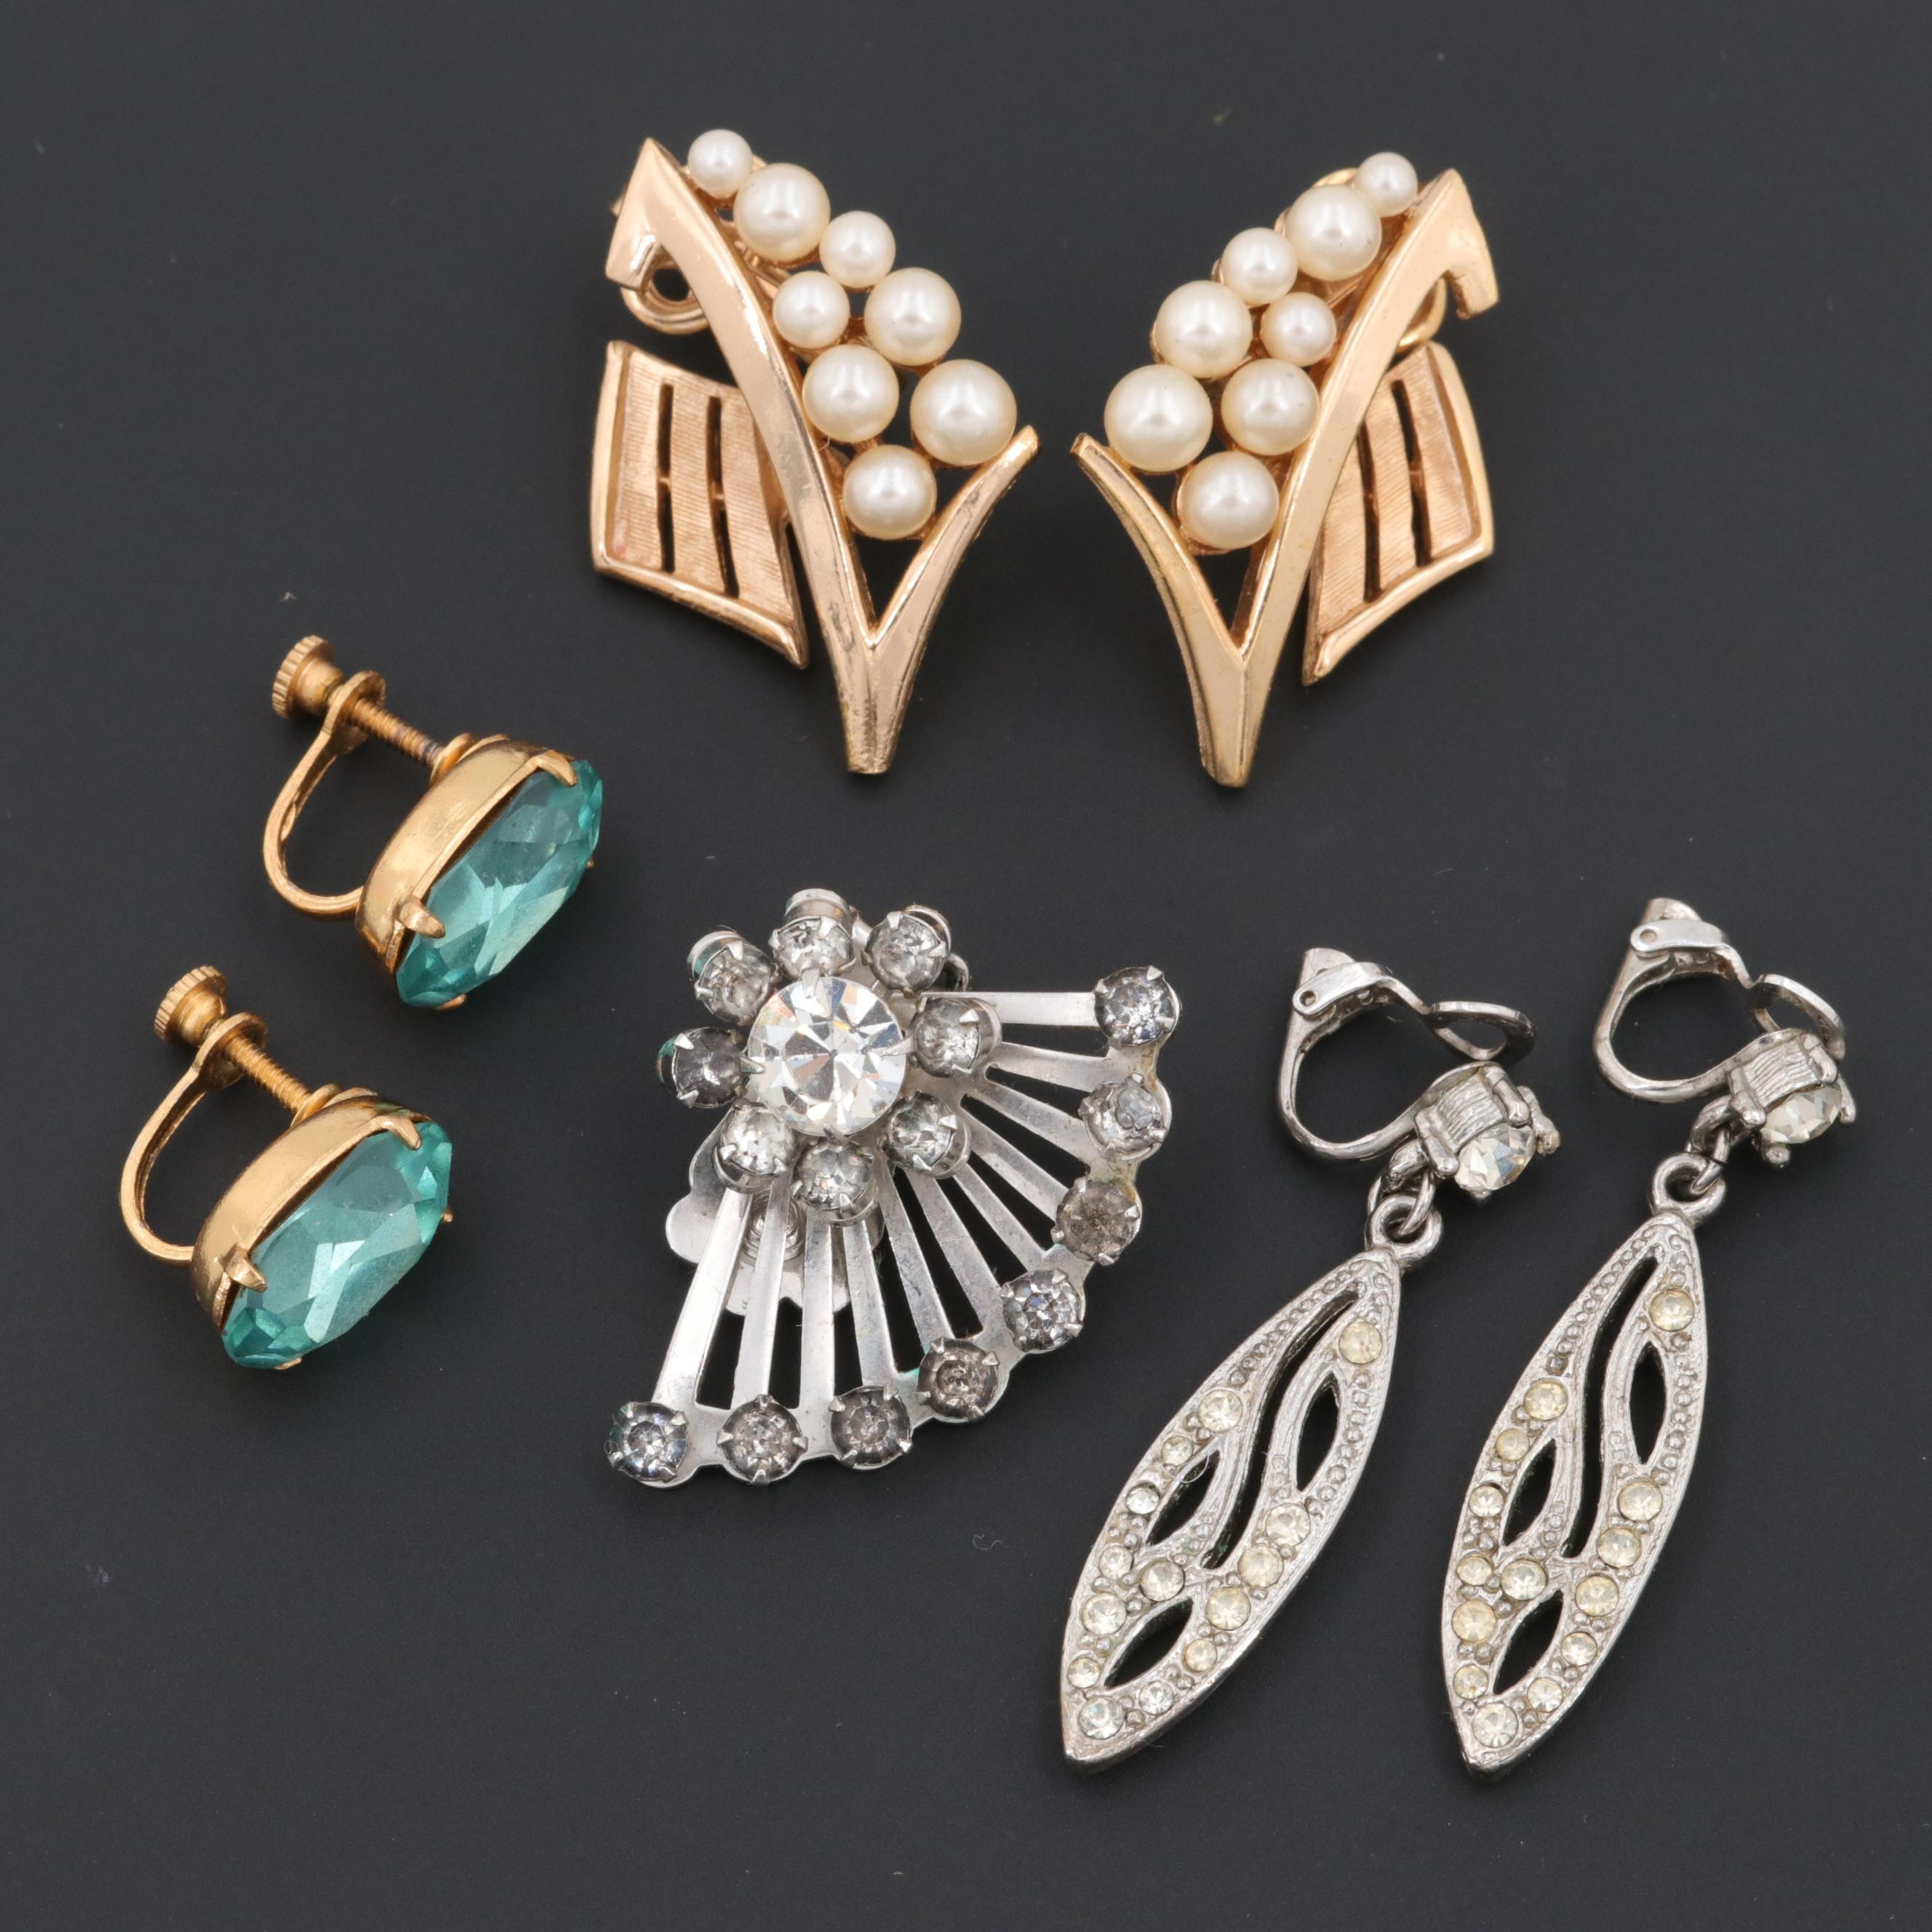 Vintage Costume Glass and Imitation Pearl Earrings Featuring Coro and Trifari